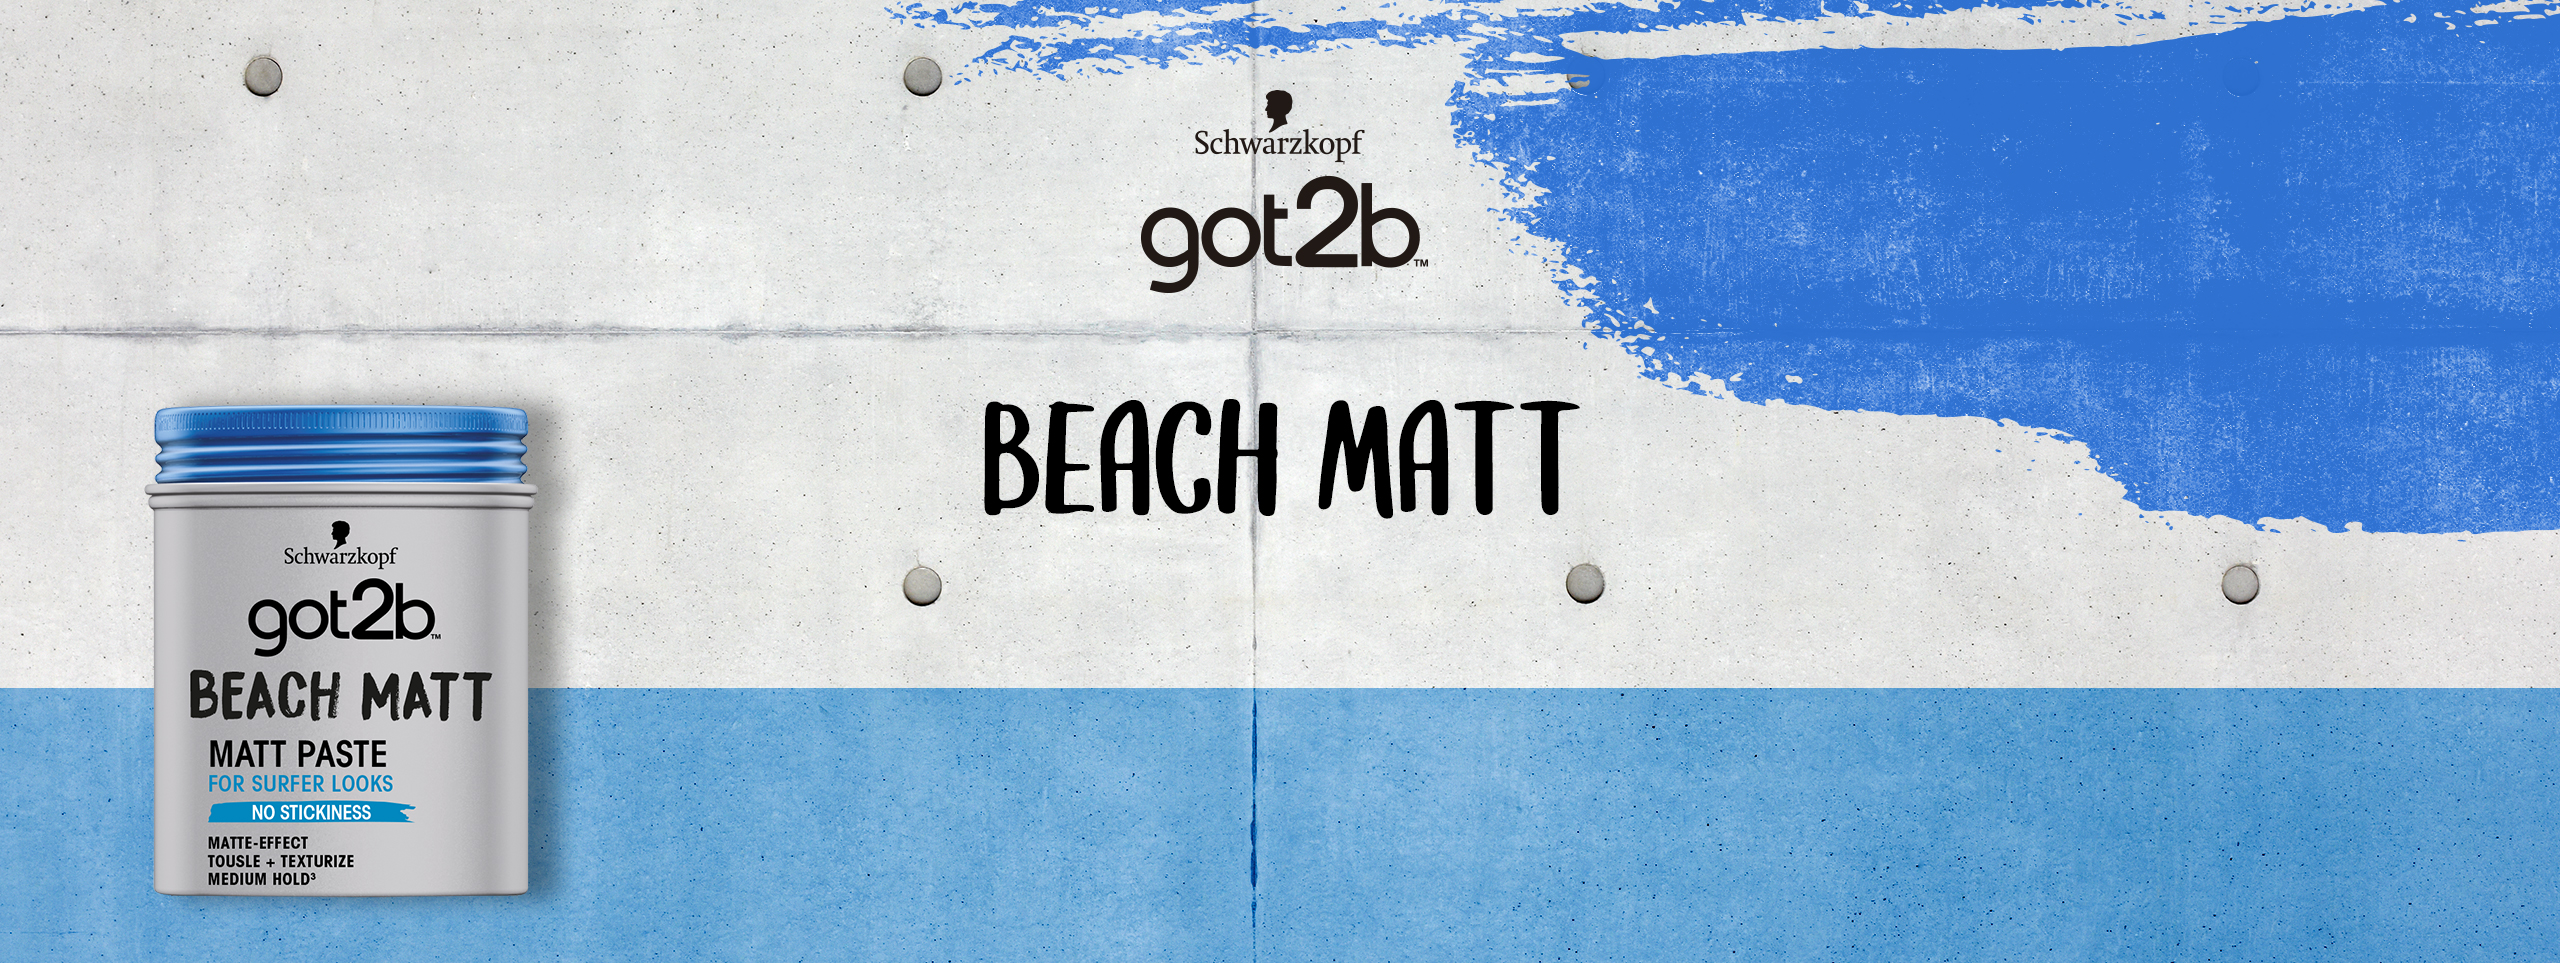 Beach_Matt_BG_2560x963